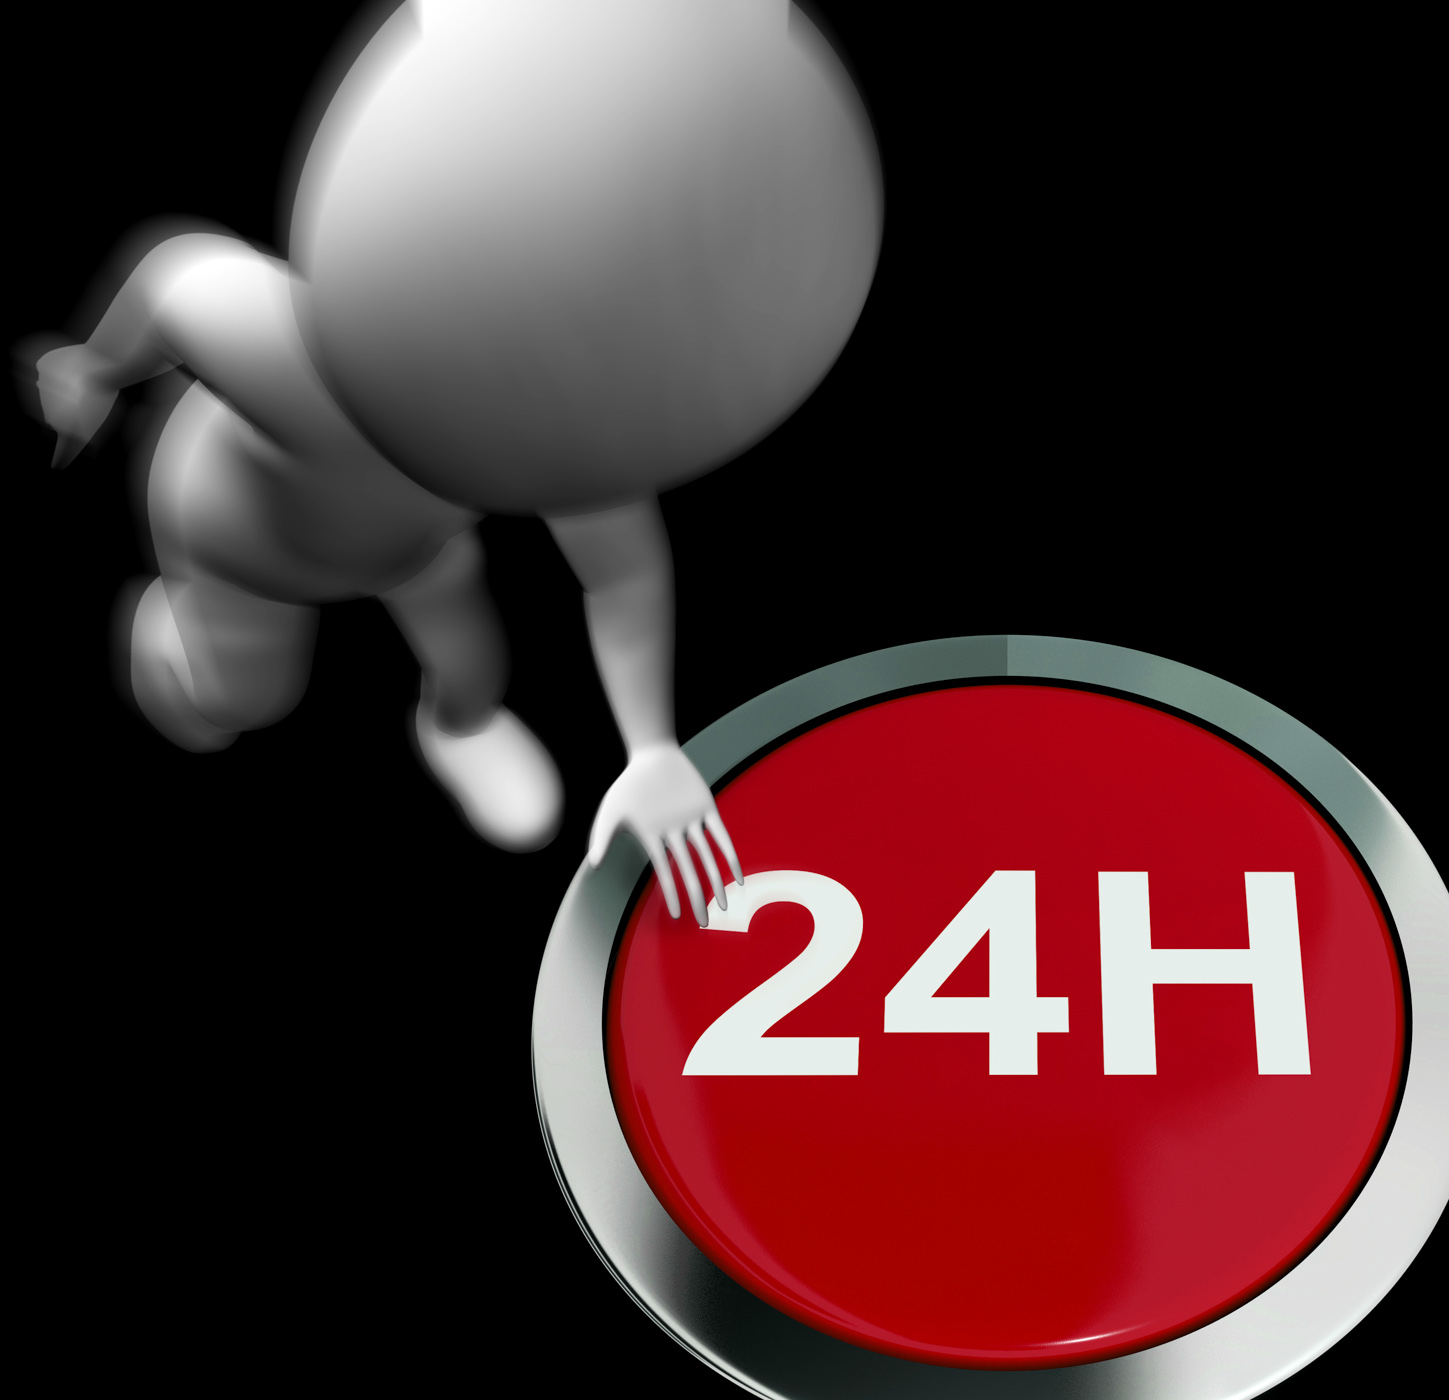 Twenty four hours pressed shows open 24h photo